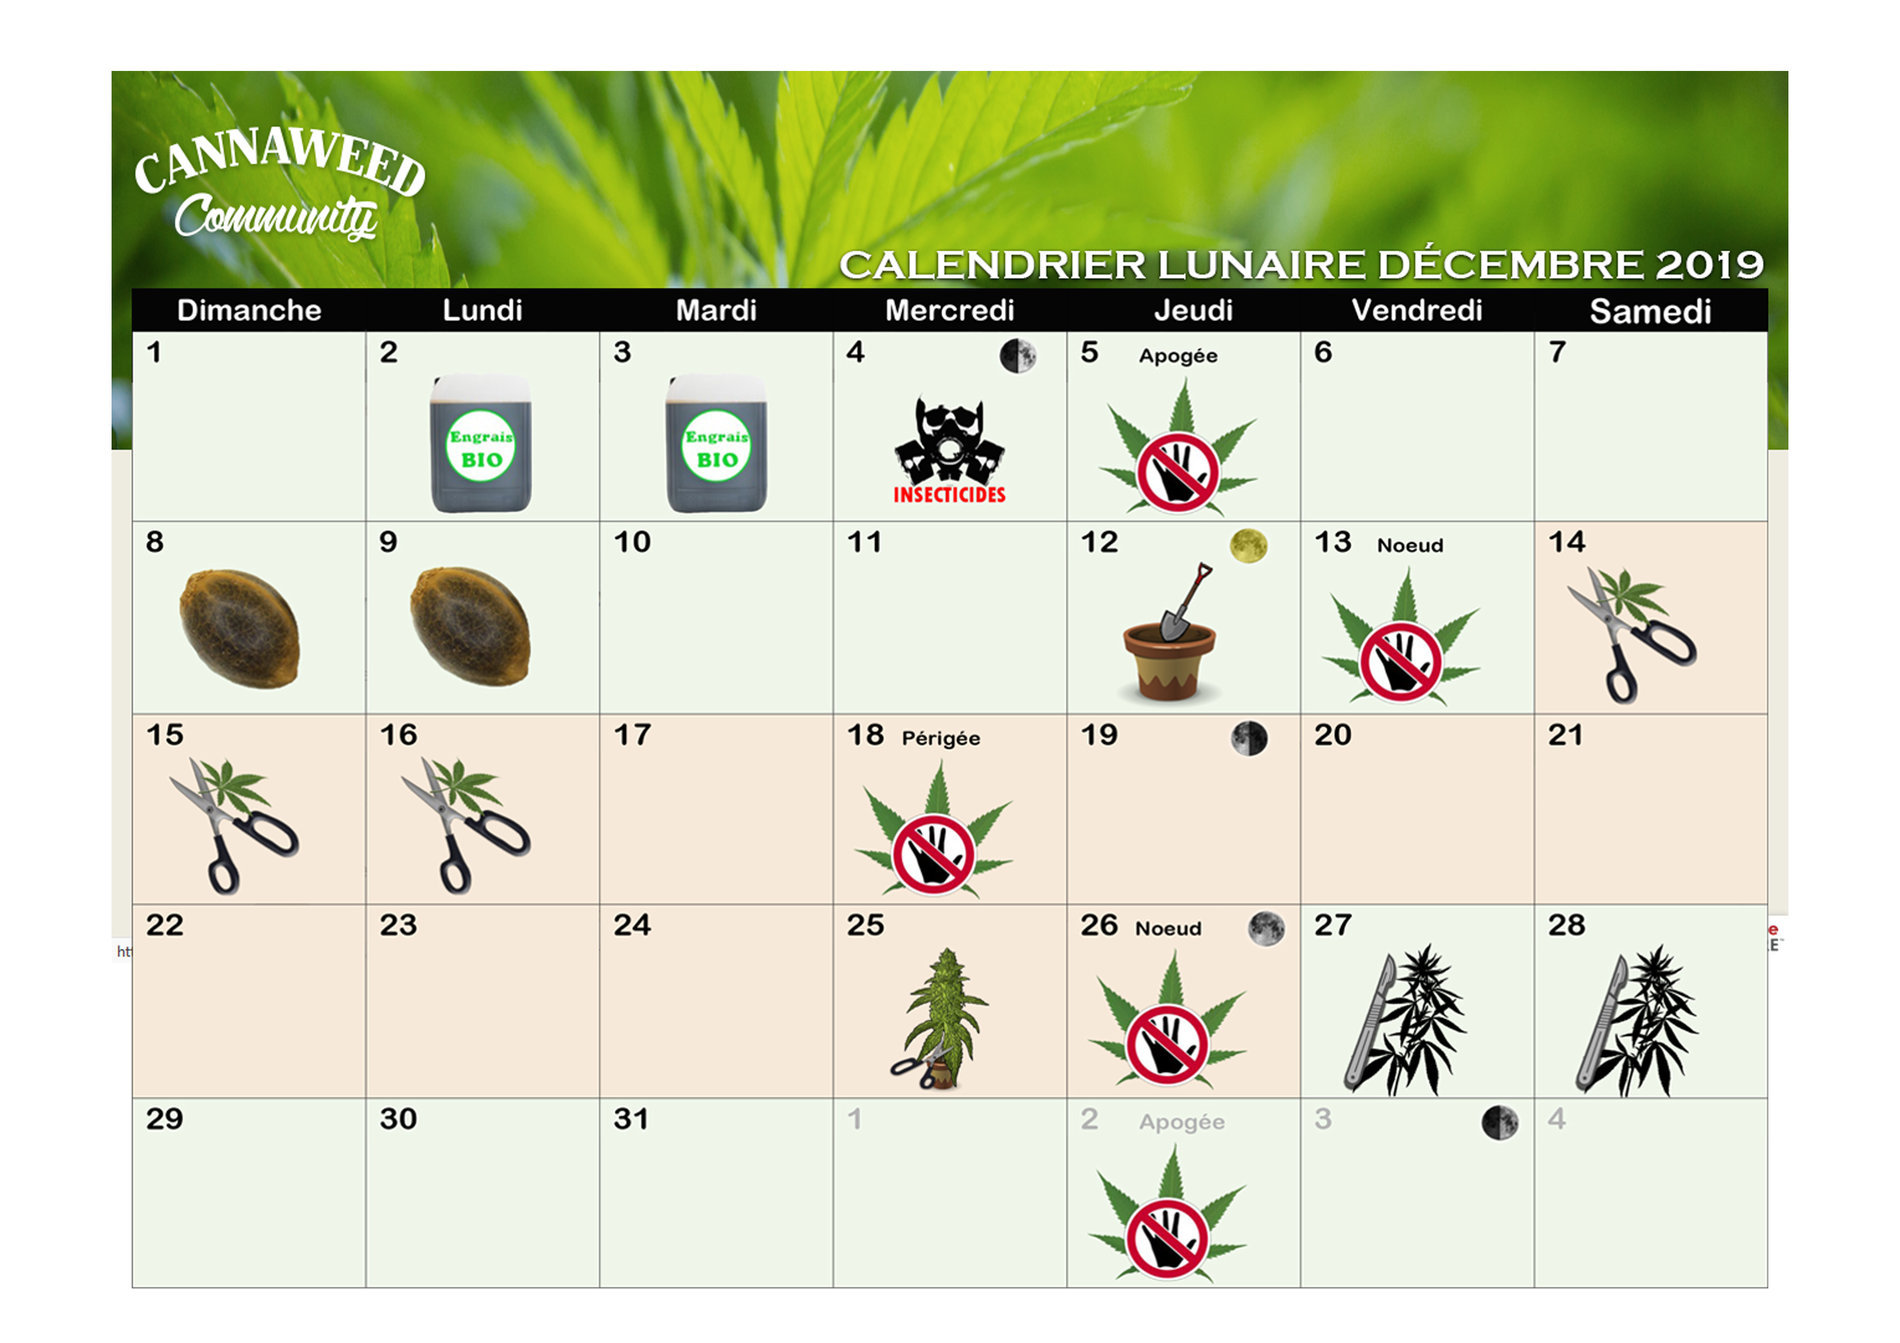 Calendrier Lunaire   Proposez vos guides / tutos   CannaWeed